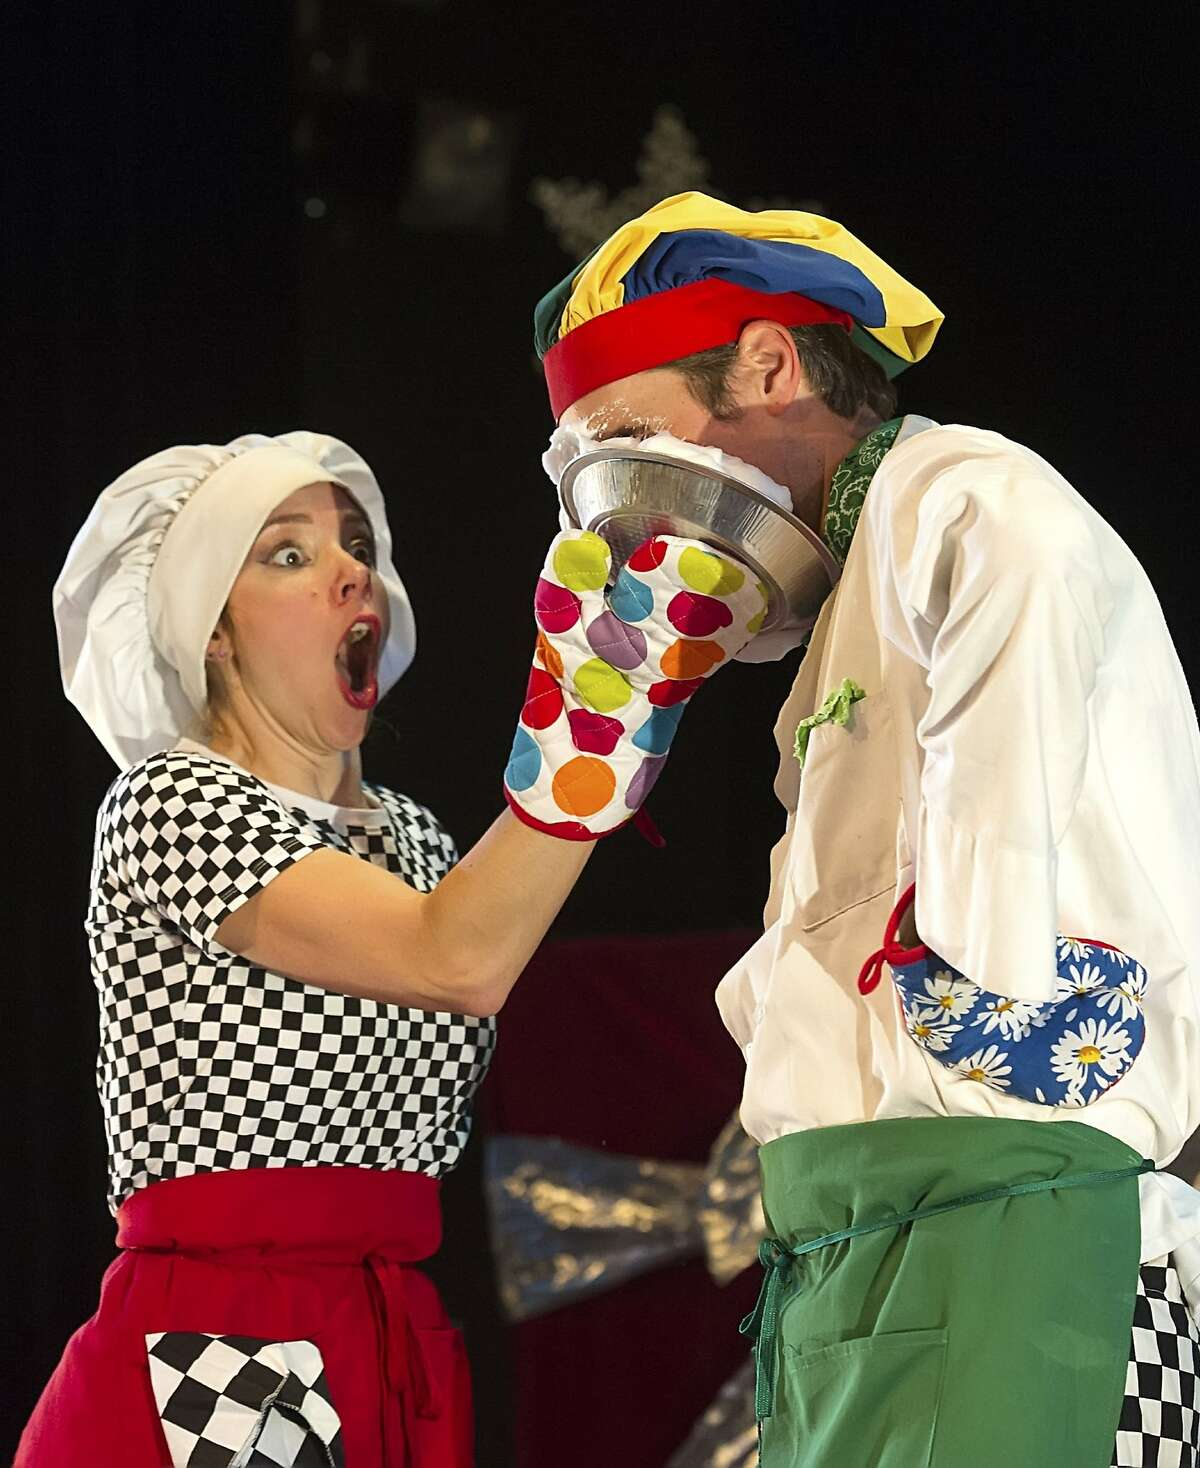 """Coventry & Kaluza 2.jpg Natasha Kaluza (left) and Jamie Coventry comprise the clown duo Coventry & Kaluza. They headline Sweet Can's """"Mittens and Mistletoe: A Winter Circus Cabaret"""" at Dance Mission Theater through Dec. 27. Photo by Shoot That Klown"""